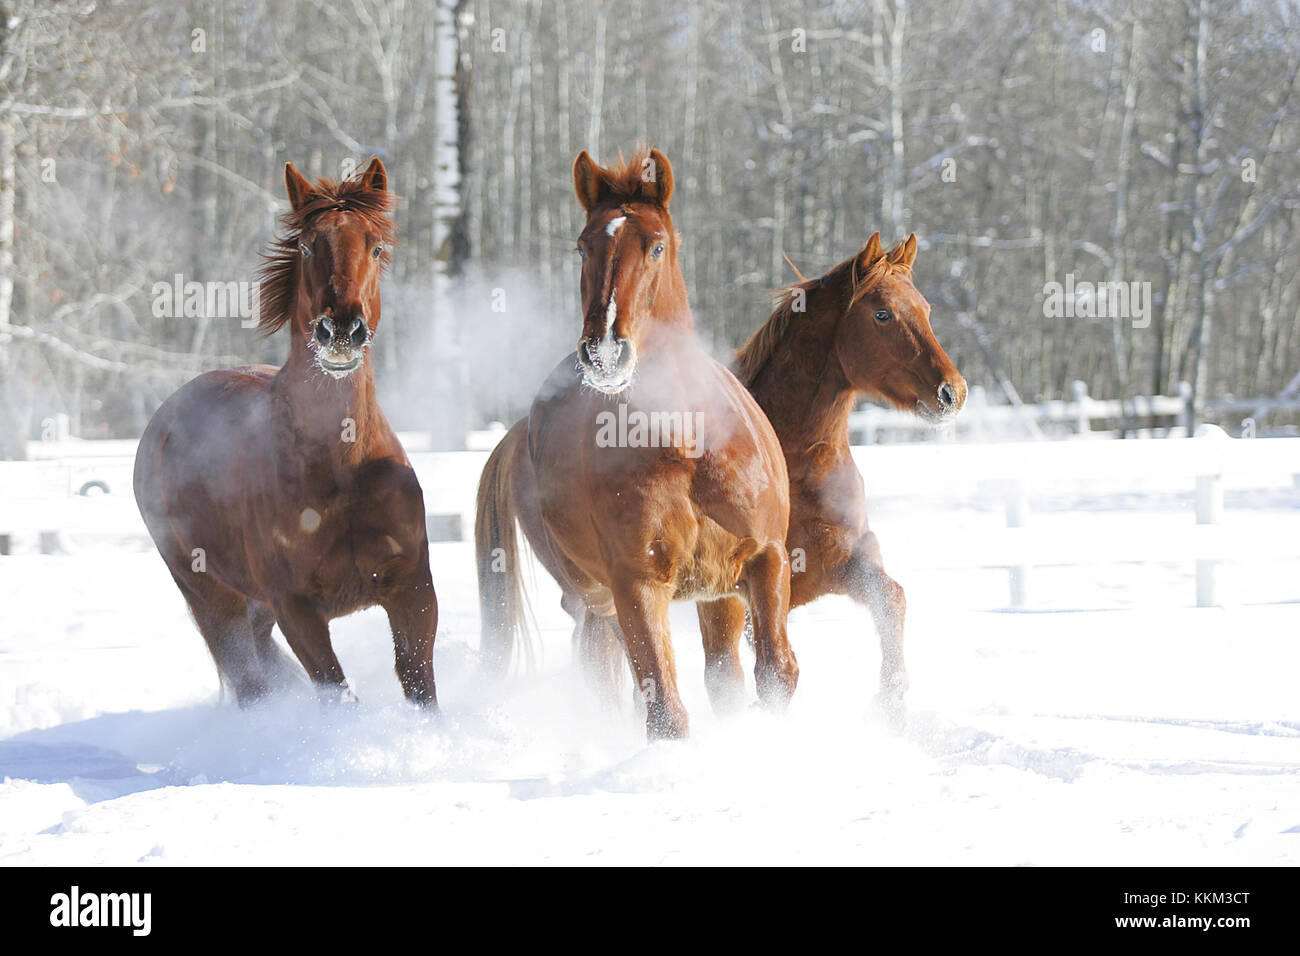 Oldenburgs in the snow - Stock Image